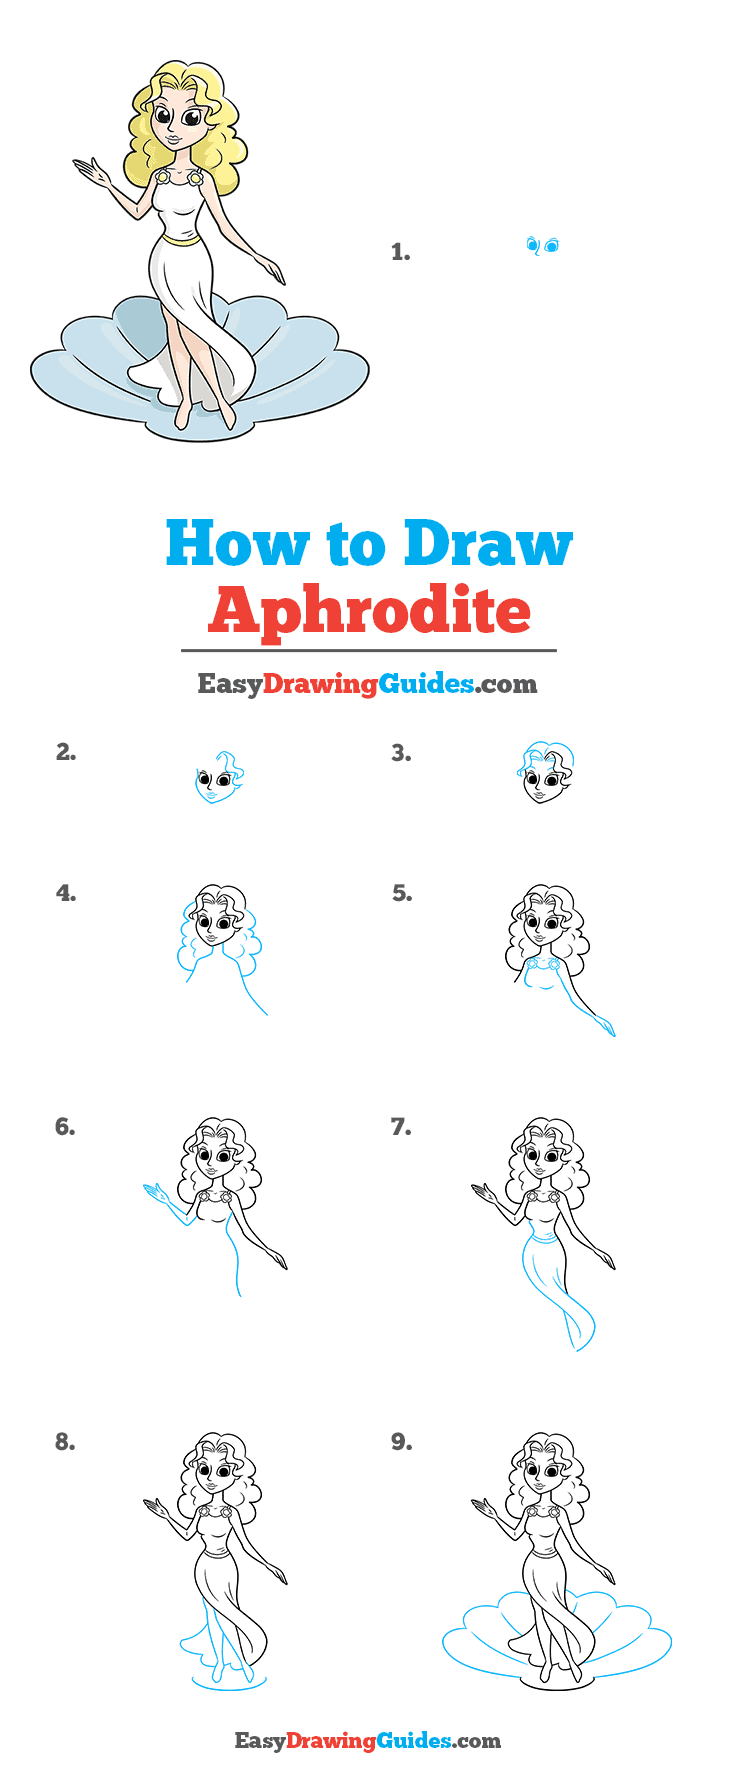 How to Draw Aphrodite